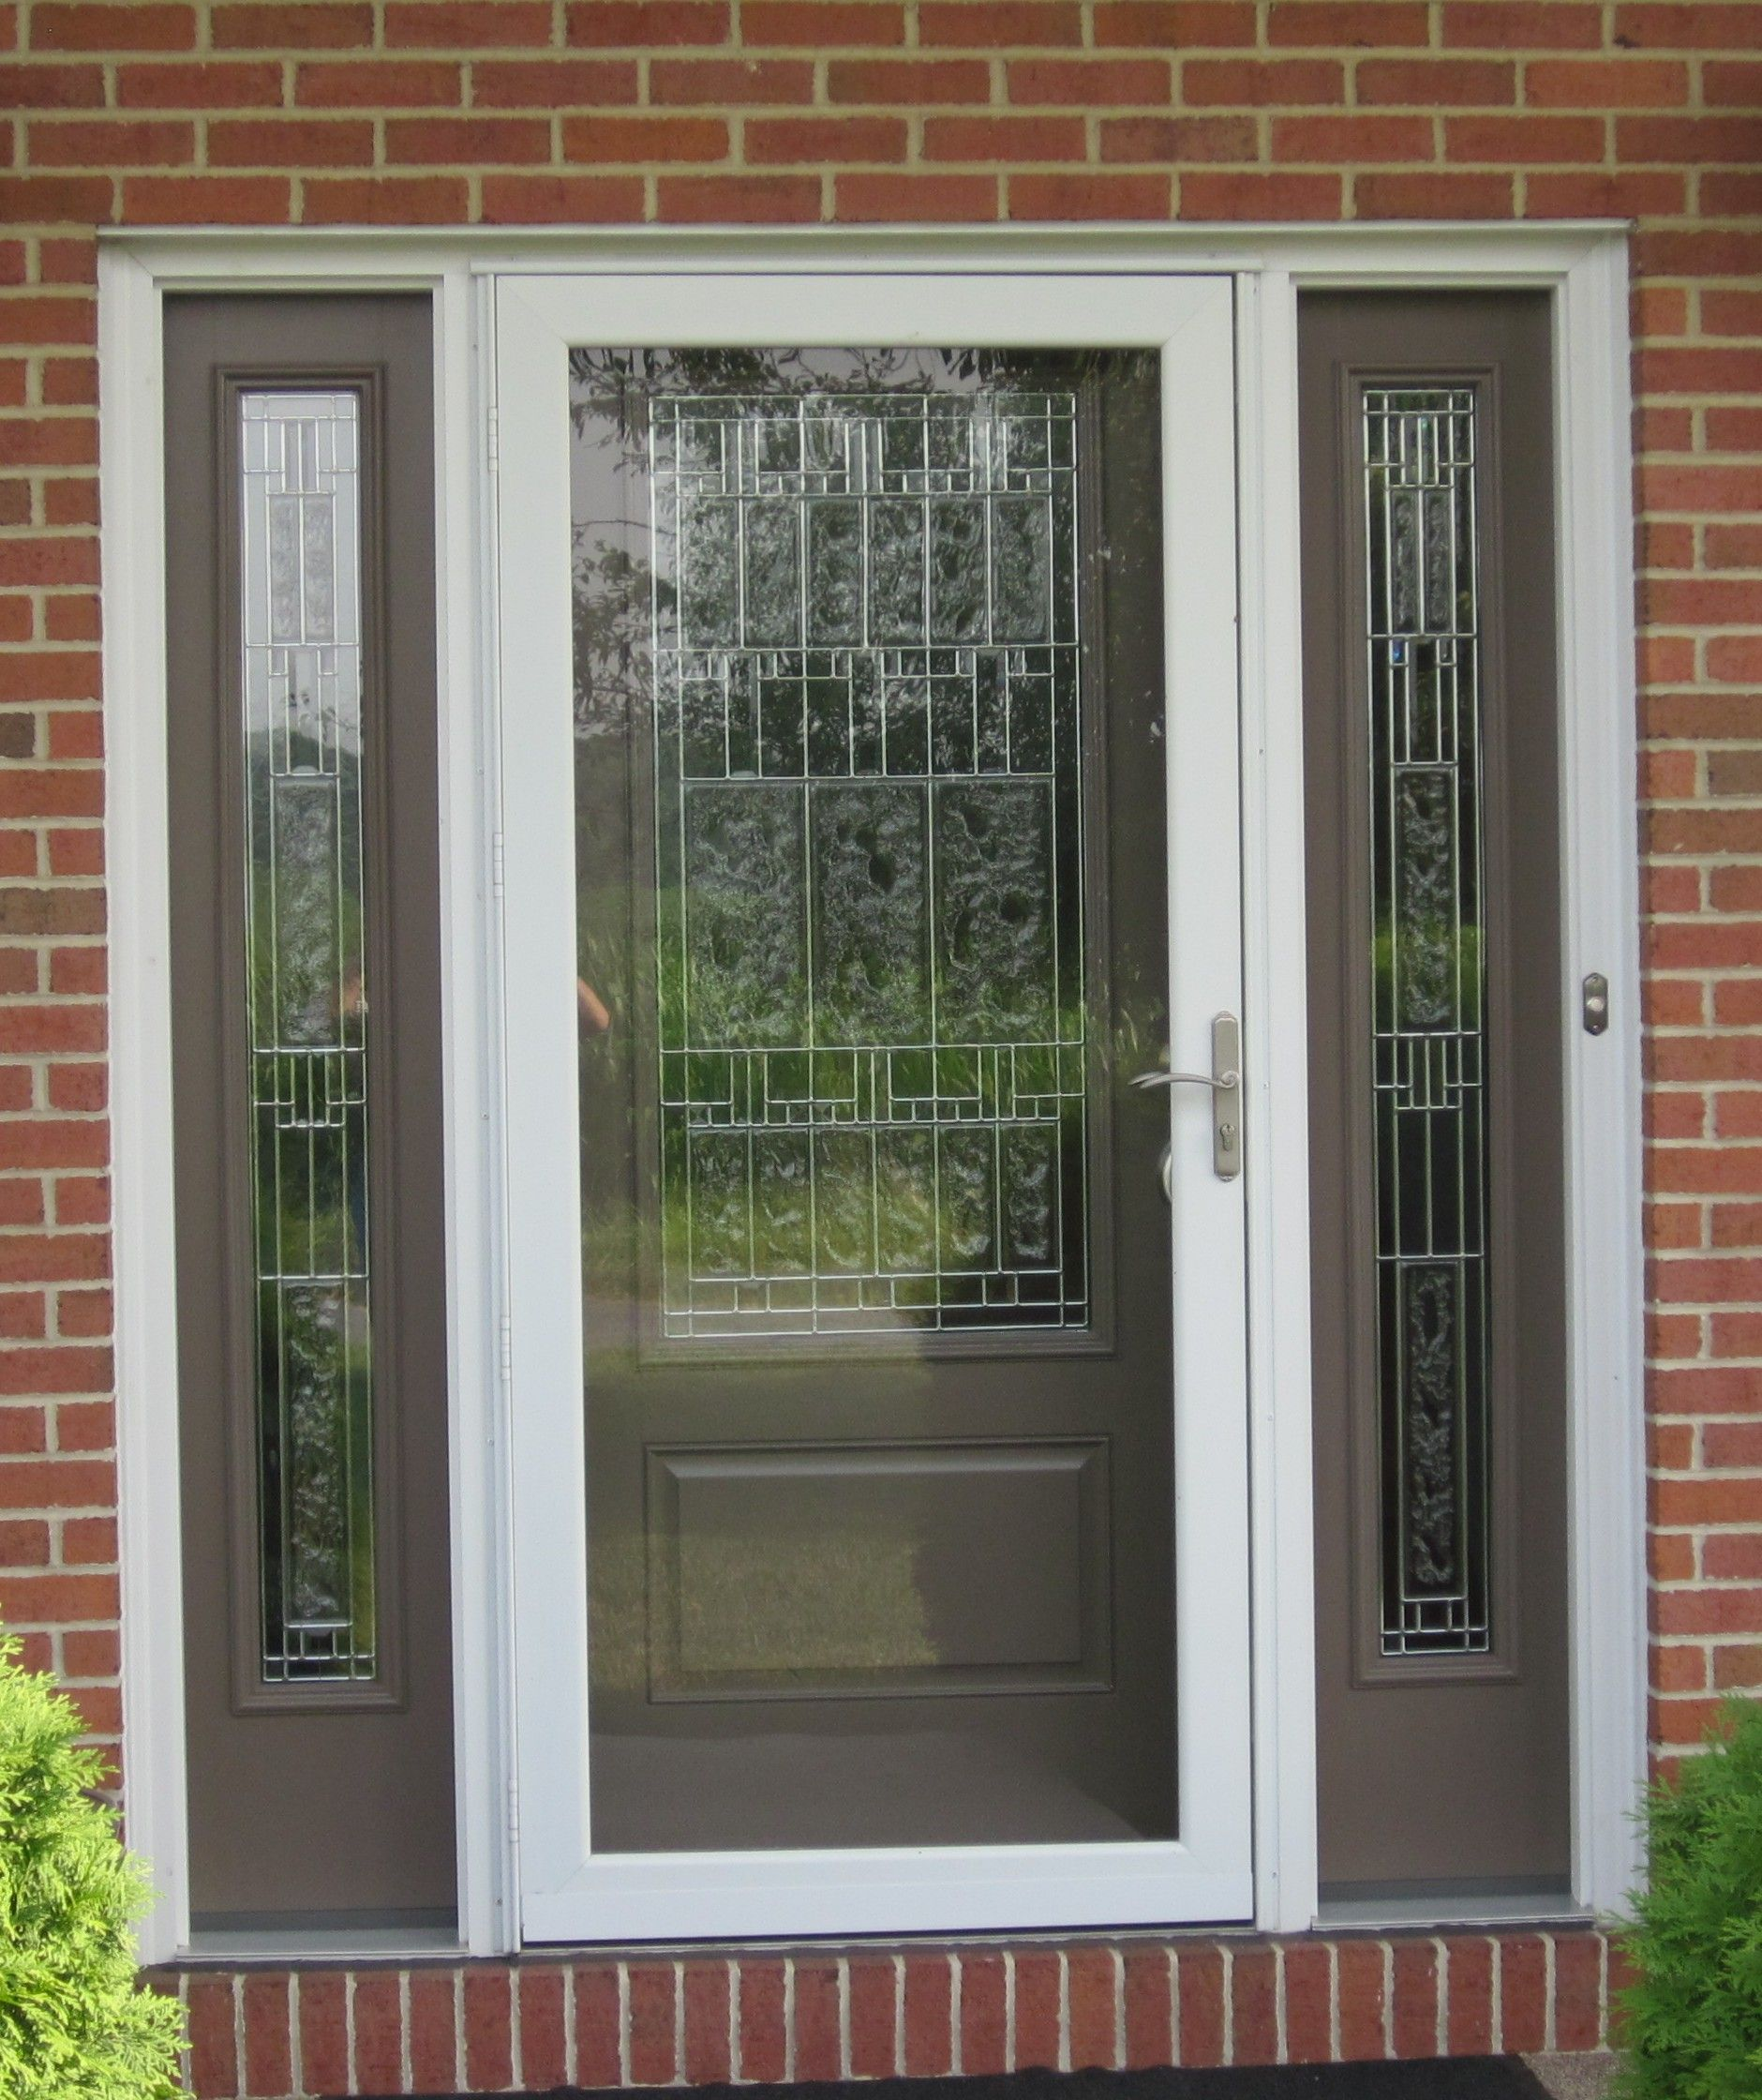 Therma Tru Doors for Your Terrific House Design Lowes Fiberglass Entry Doors | Therma Tru Patio Doors Reviews | Therma Tru Doors & Therma Tru Doors for Your Terrific House Design: Lowes Fiberglass ...